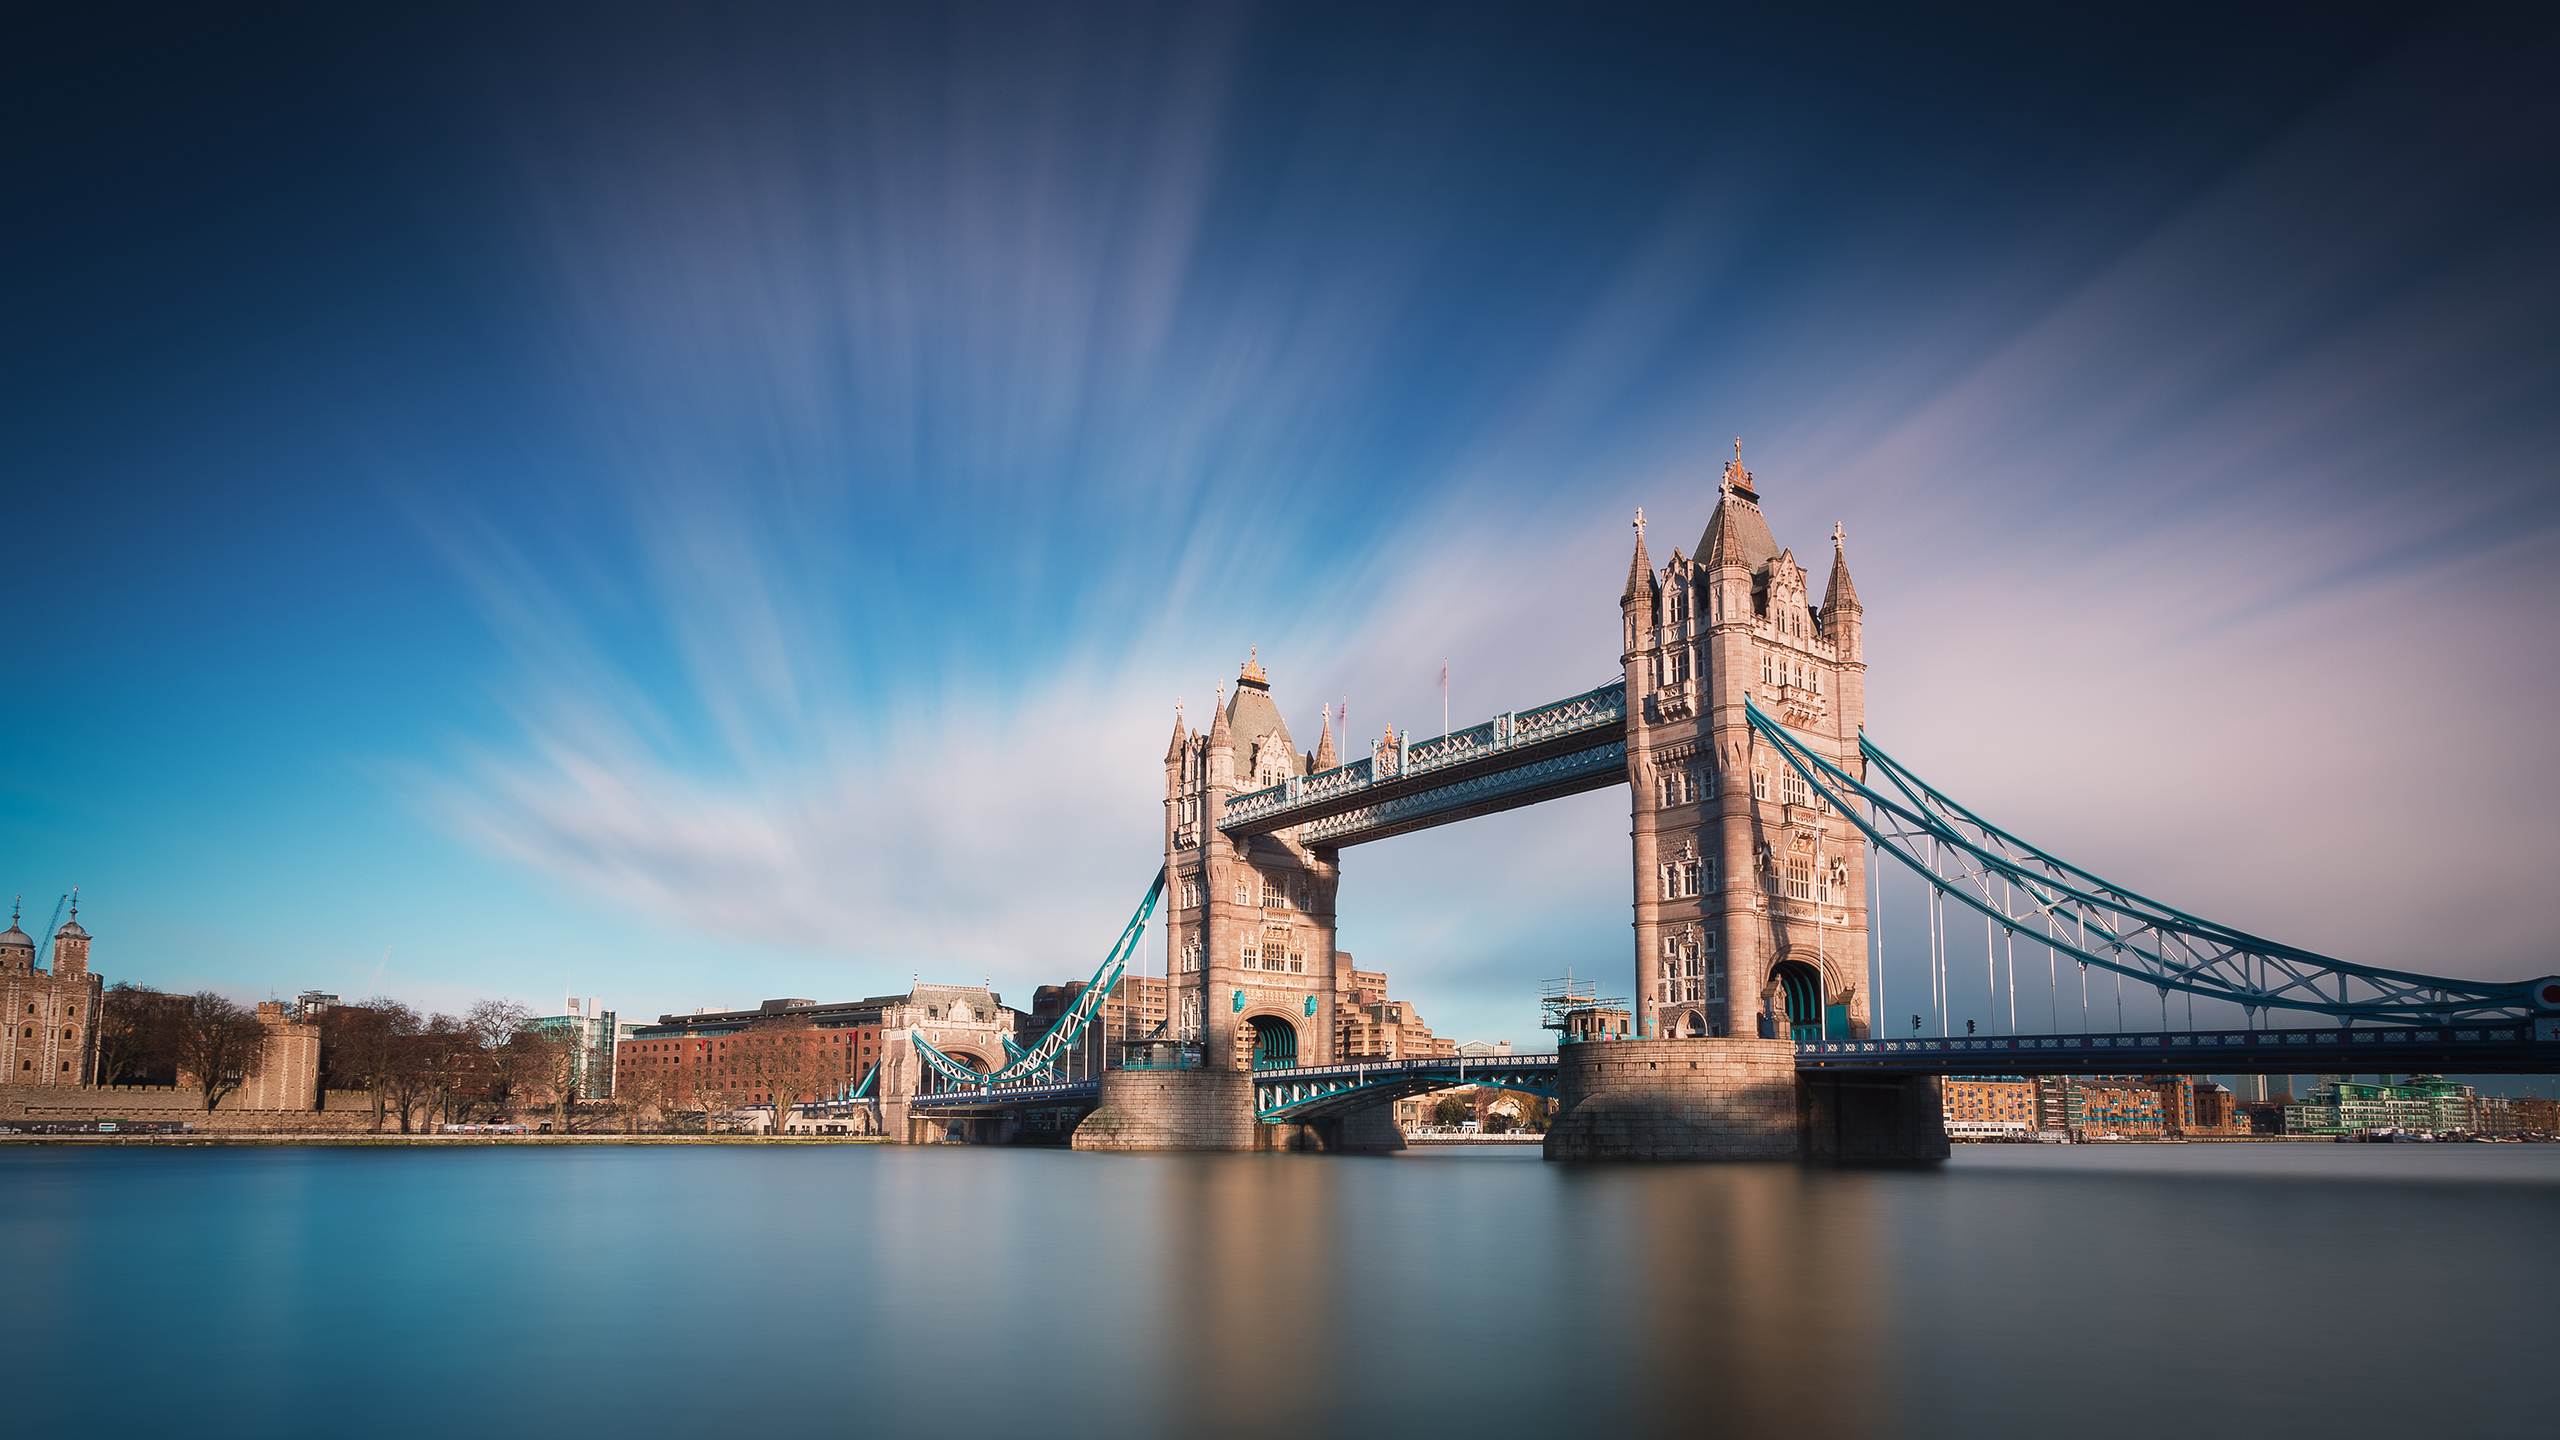 Wallpaper Blink - Tower Bridge Wallpaper HD 22 - 2560 X 1440 for ...